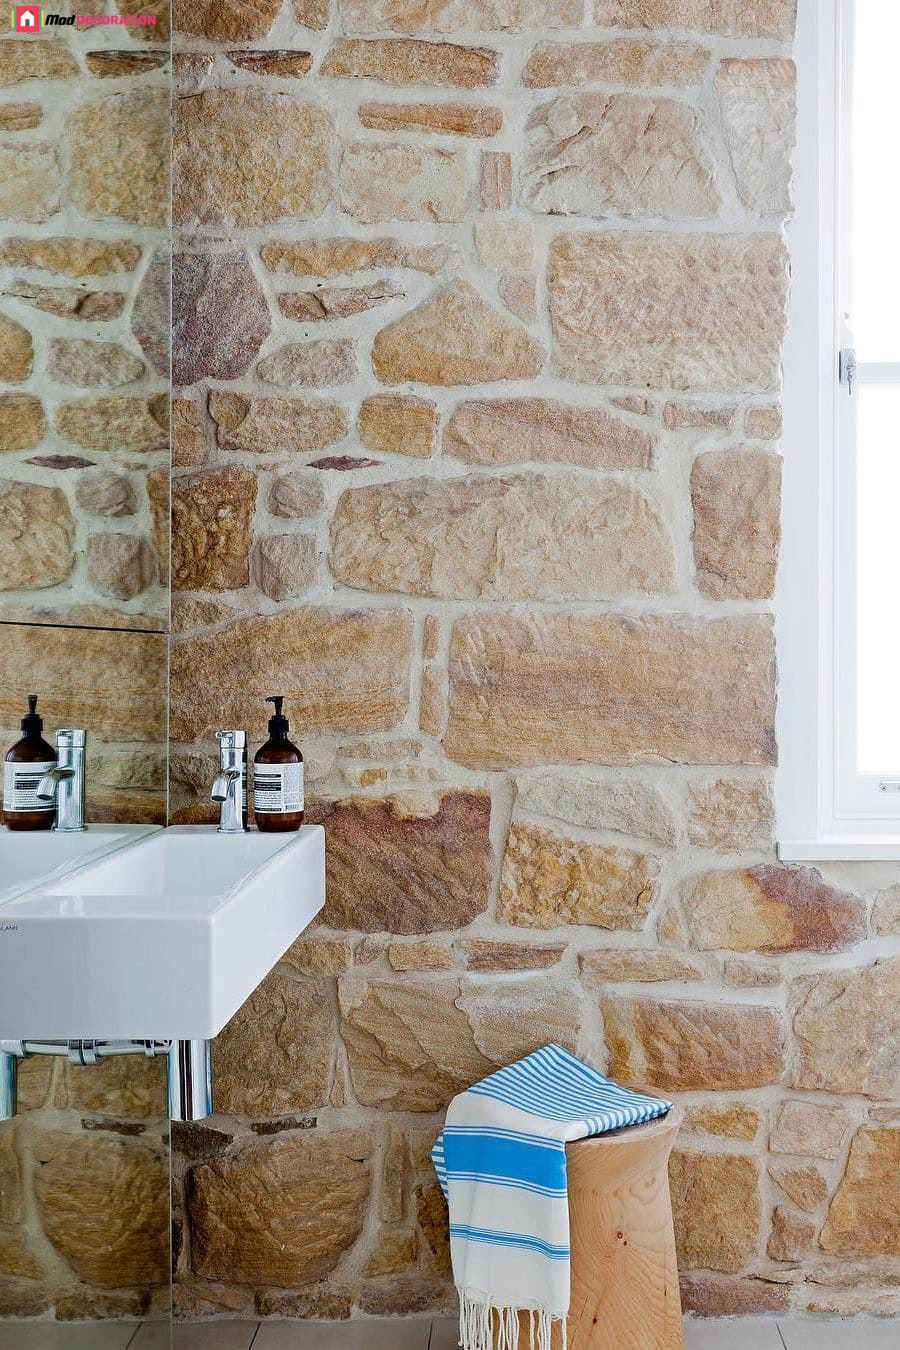 14 New Bathroom Ideas to Make Your Space Feel Like a Spa